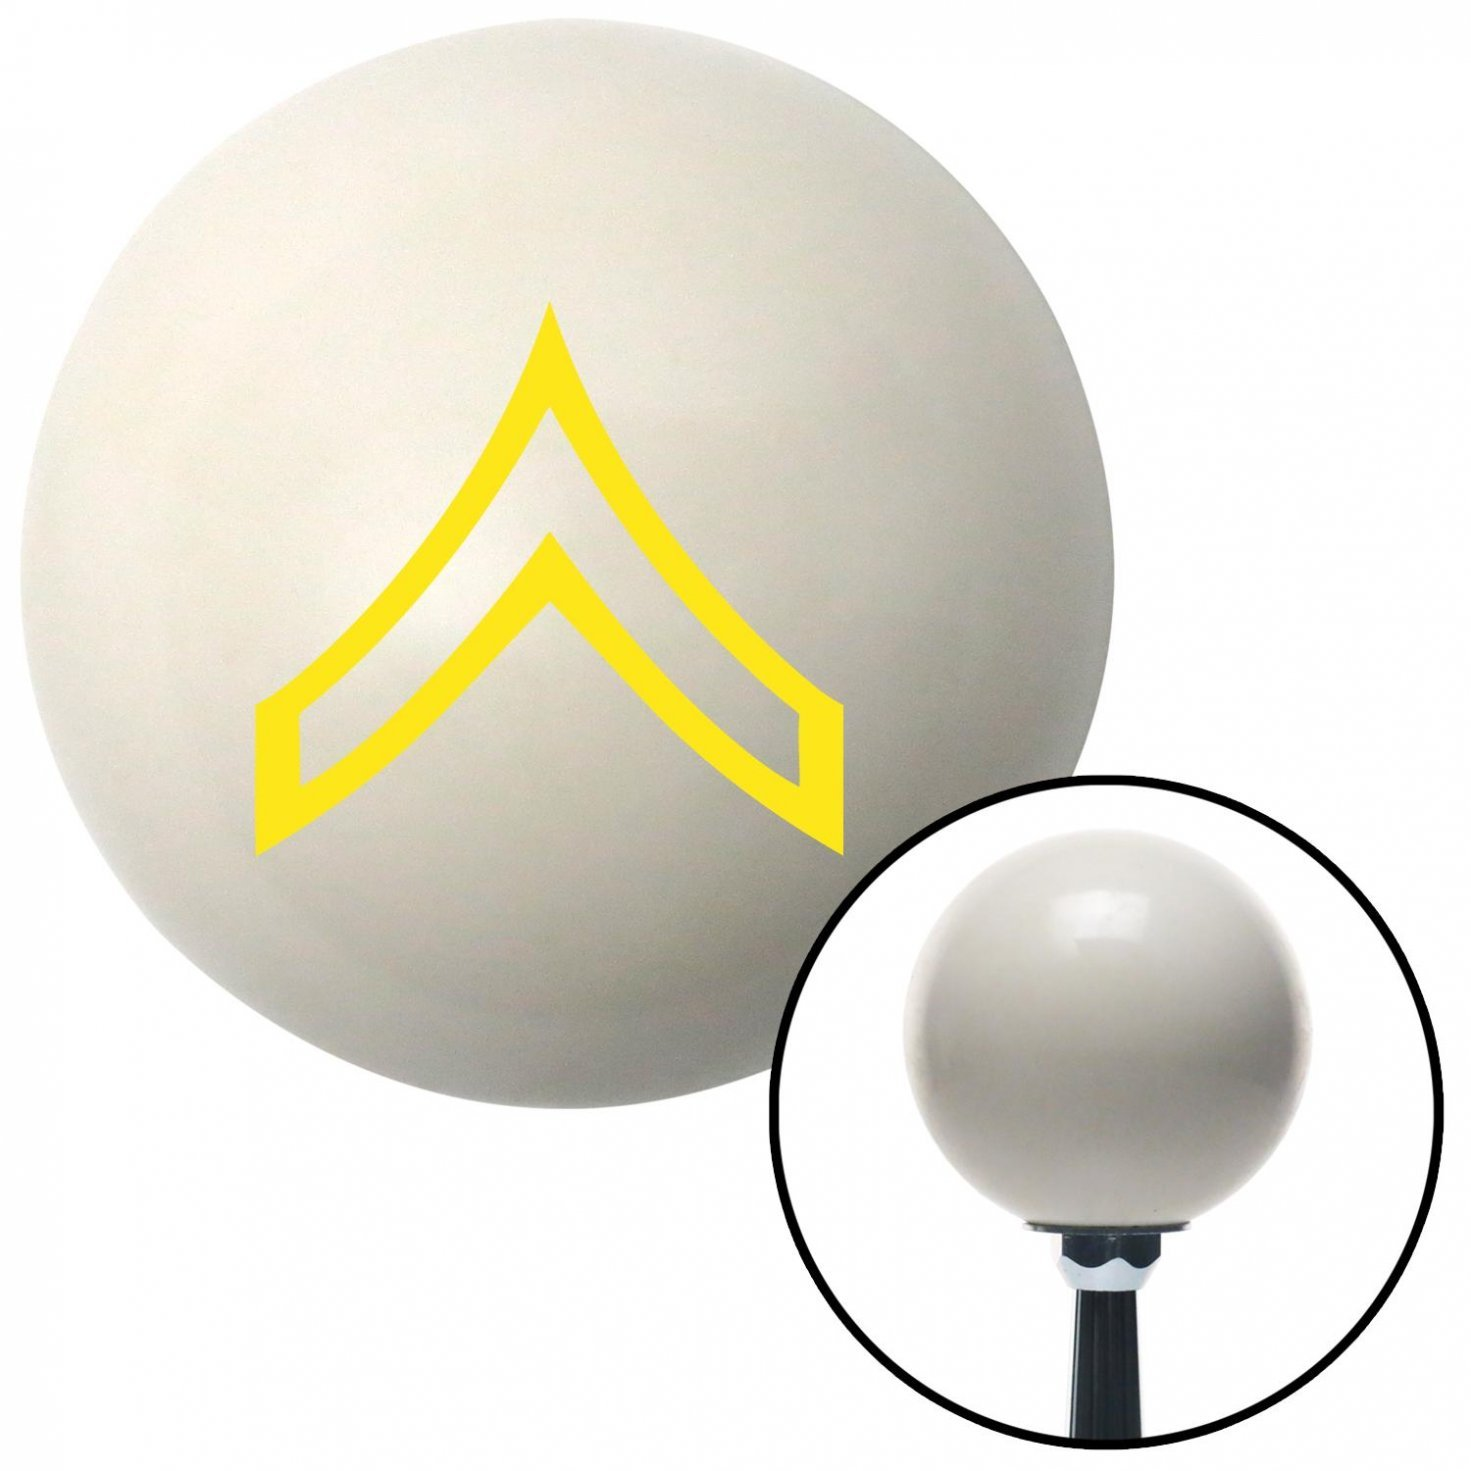 American Shifter 35672 Ivory Shift Knob with 16mm x 1.5 Insert Yellow Private